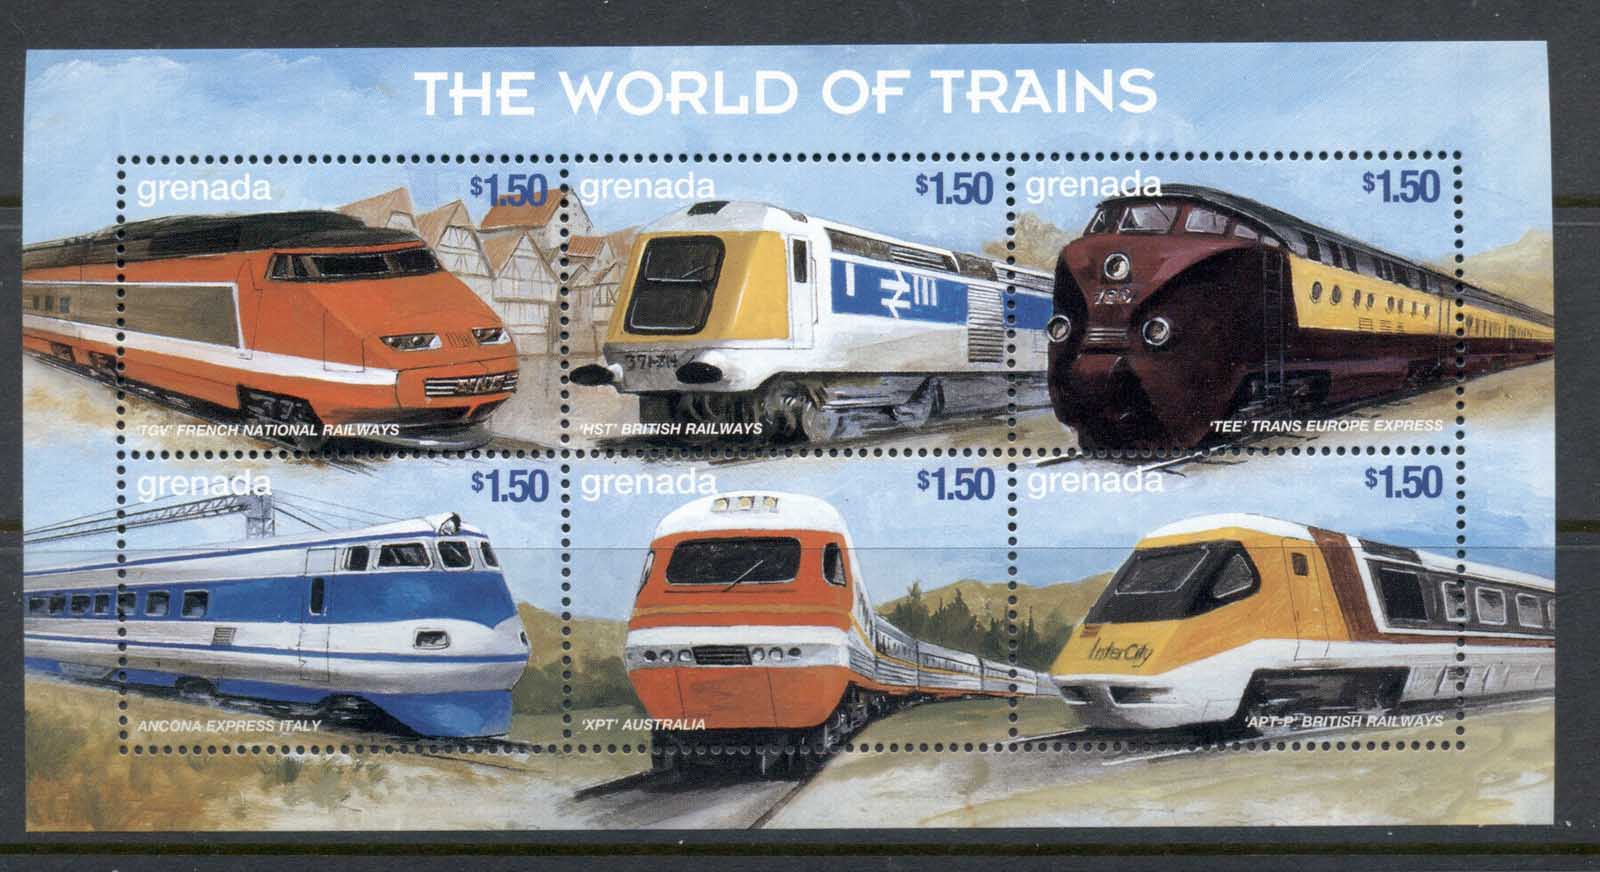 Grenada 1999 The World of Trains, TGV French National railways sheetlet MUH